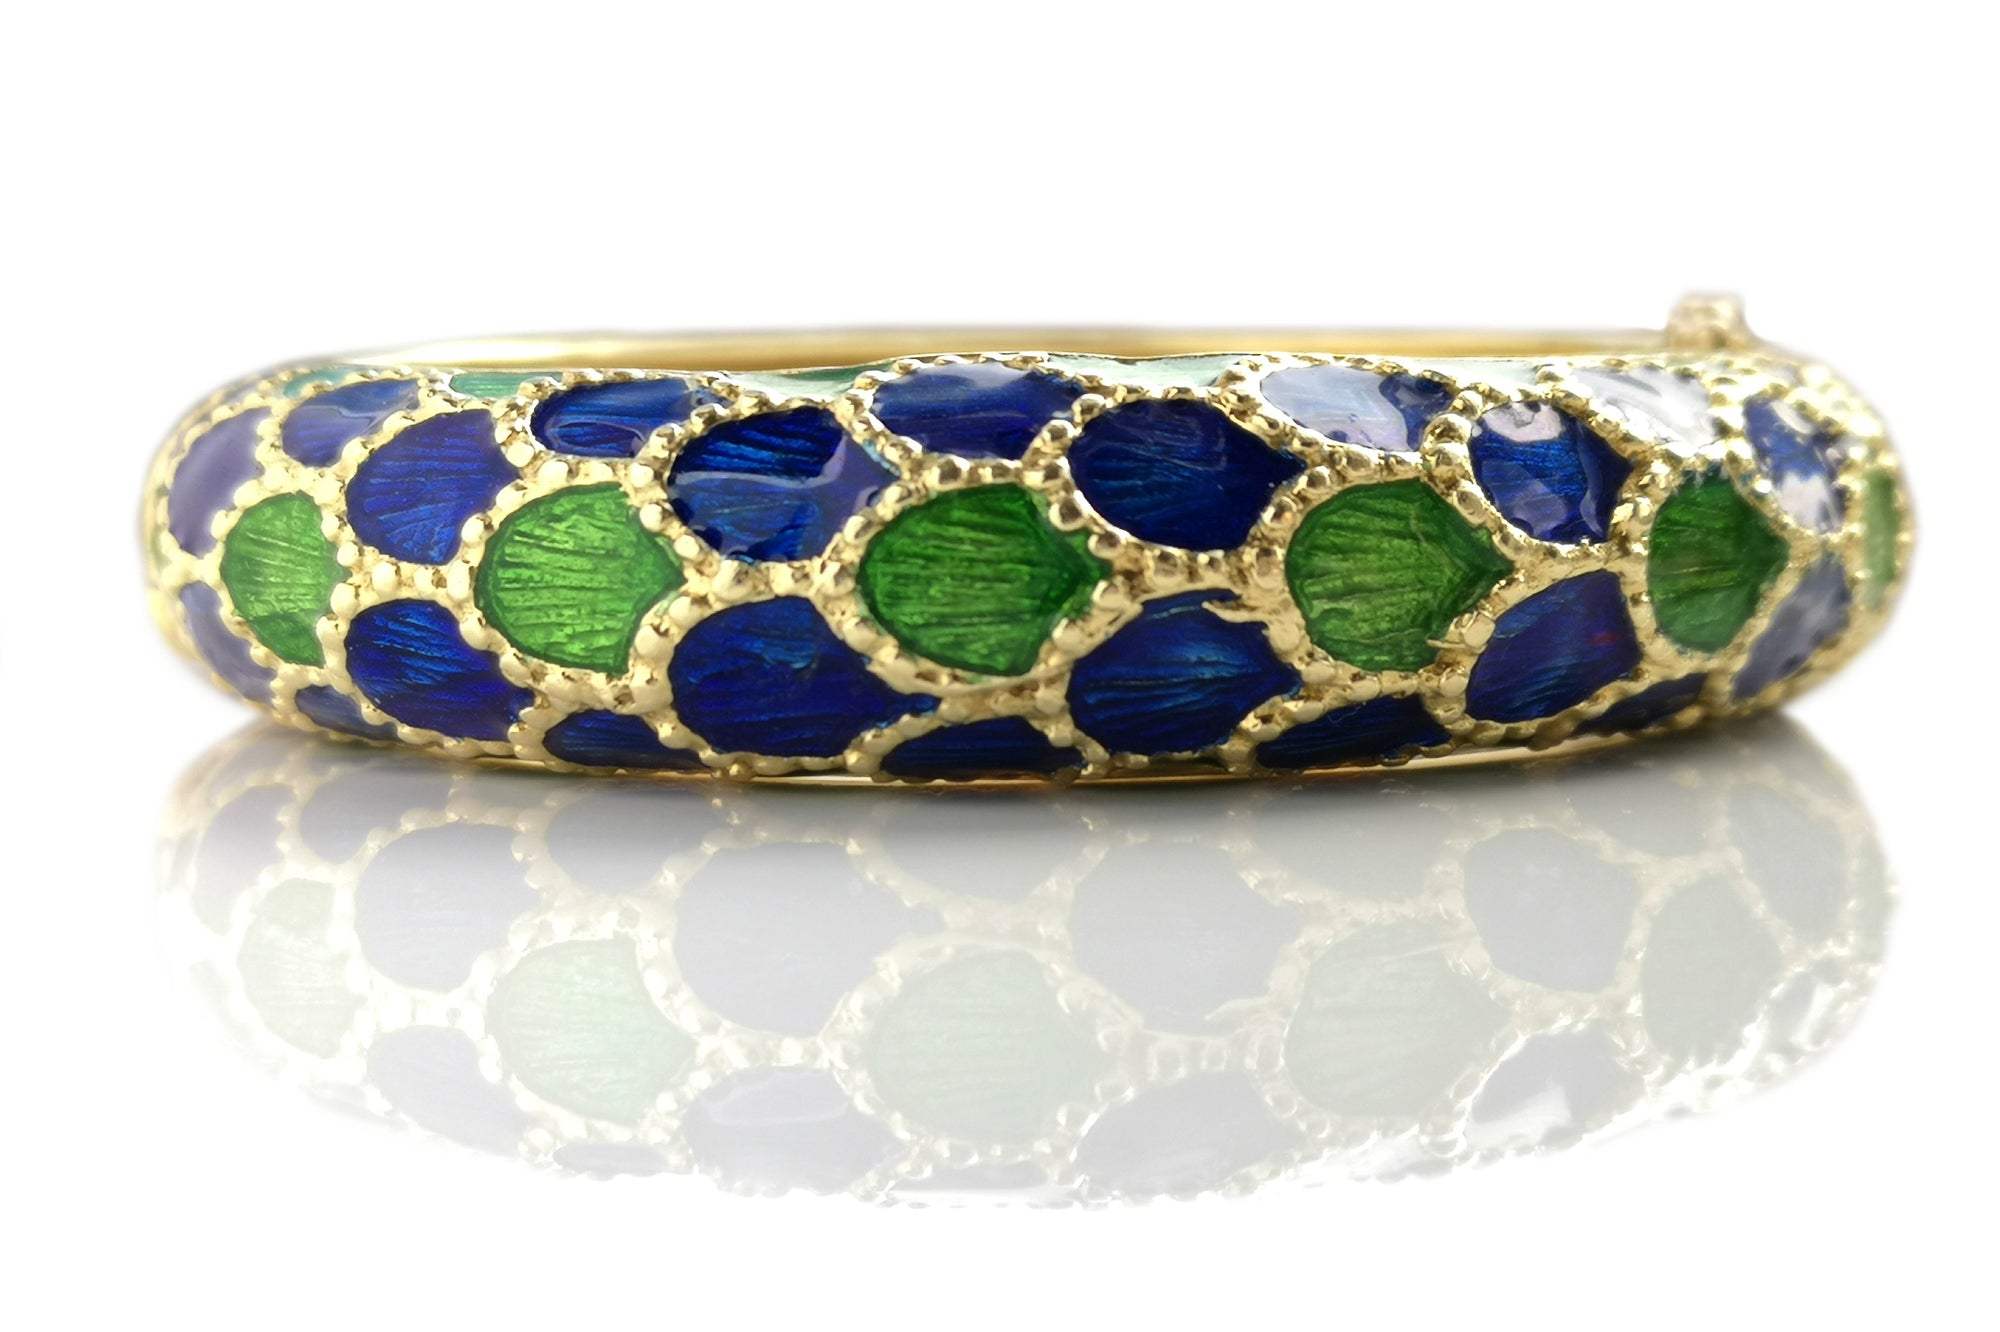 1960s Tiffany & Co Blue Green Enamel Bangle Bracelet